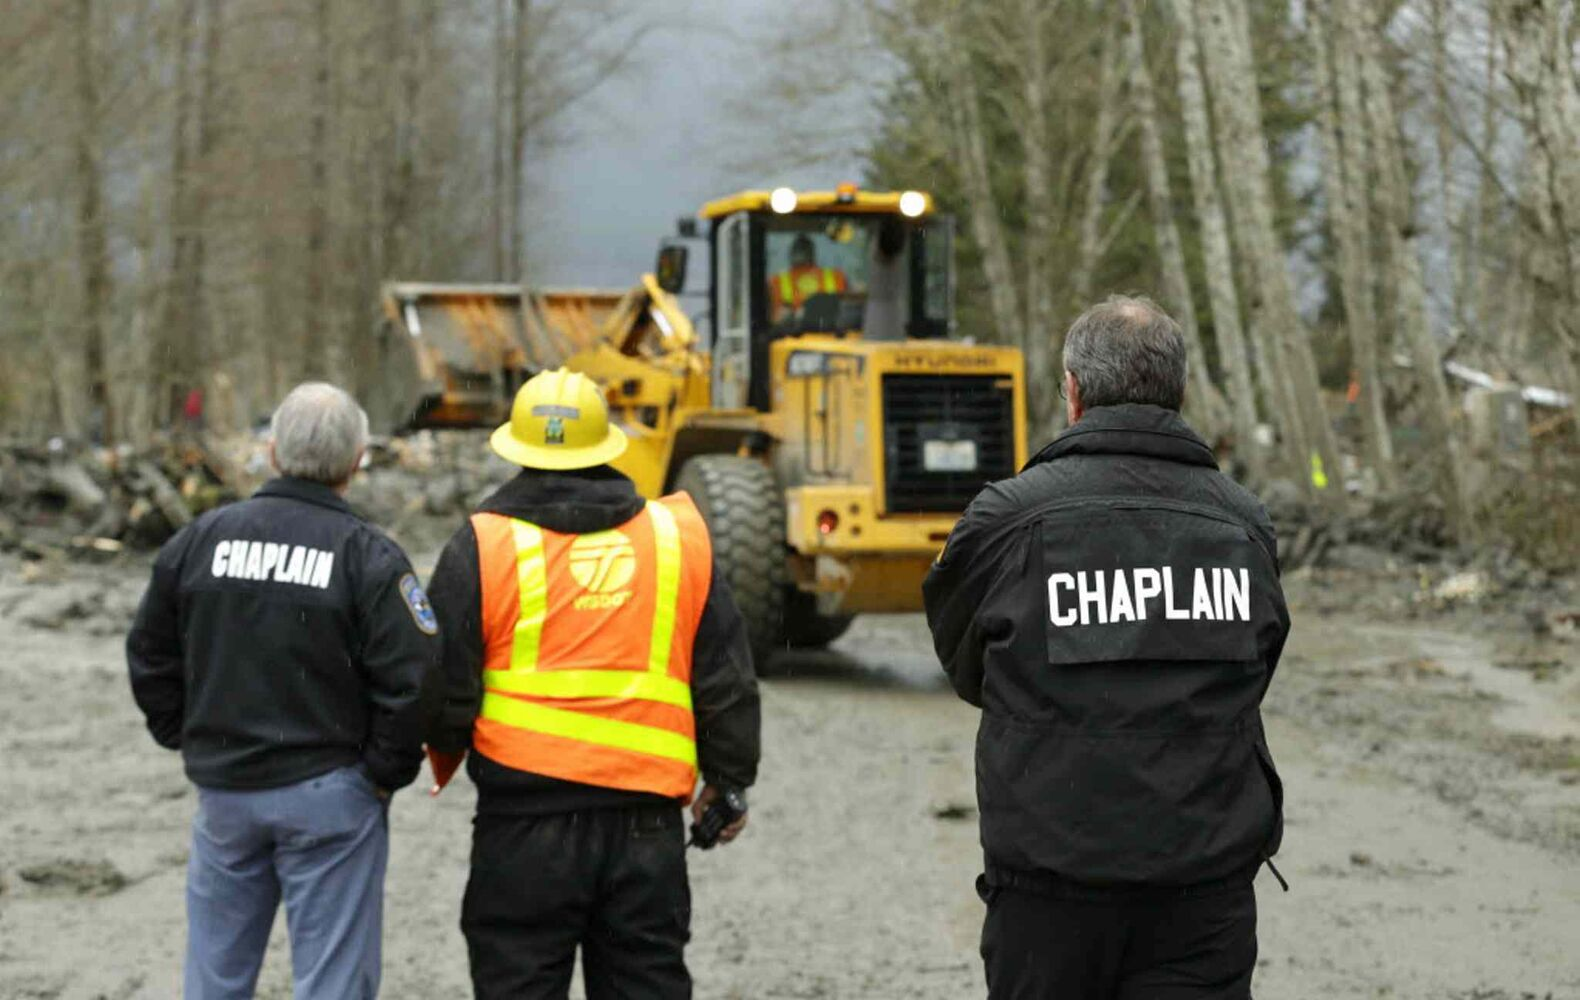 Washington State Patrol chaplains Joel Smith, left, and Mike Neil, right, watch as workers using heavy equipment work to clear debris, Tuesday, March 25, from Washington Highway 530 on the western edge of the massive mudslide that struck near Arlington, Wash. Saturday, killing at least 16 people and leaving dozens missing.  (Ted S. Warren, Pool / The Associated Press )